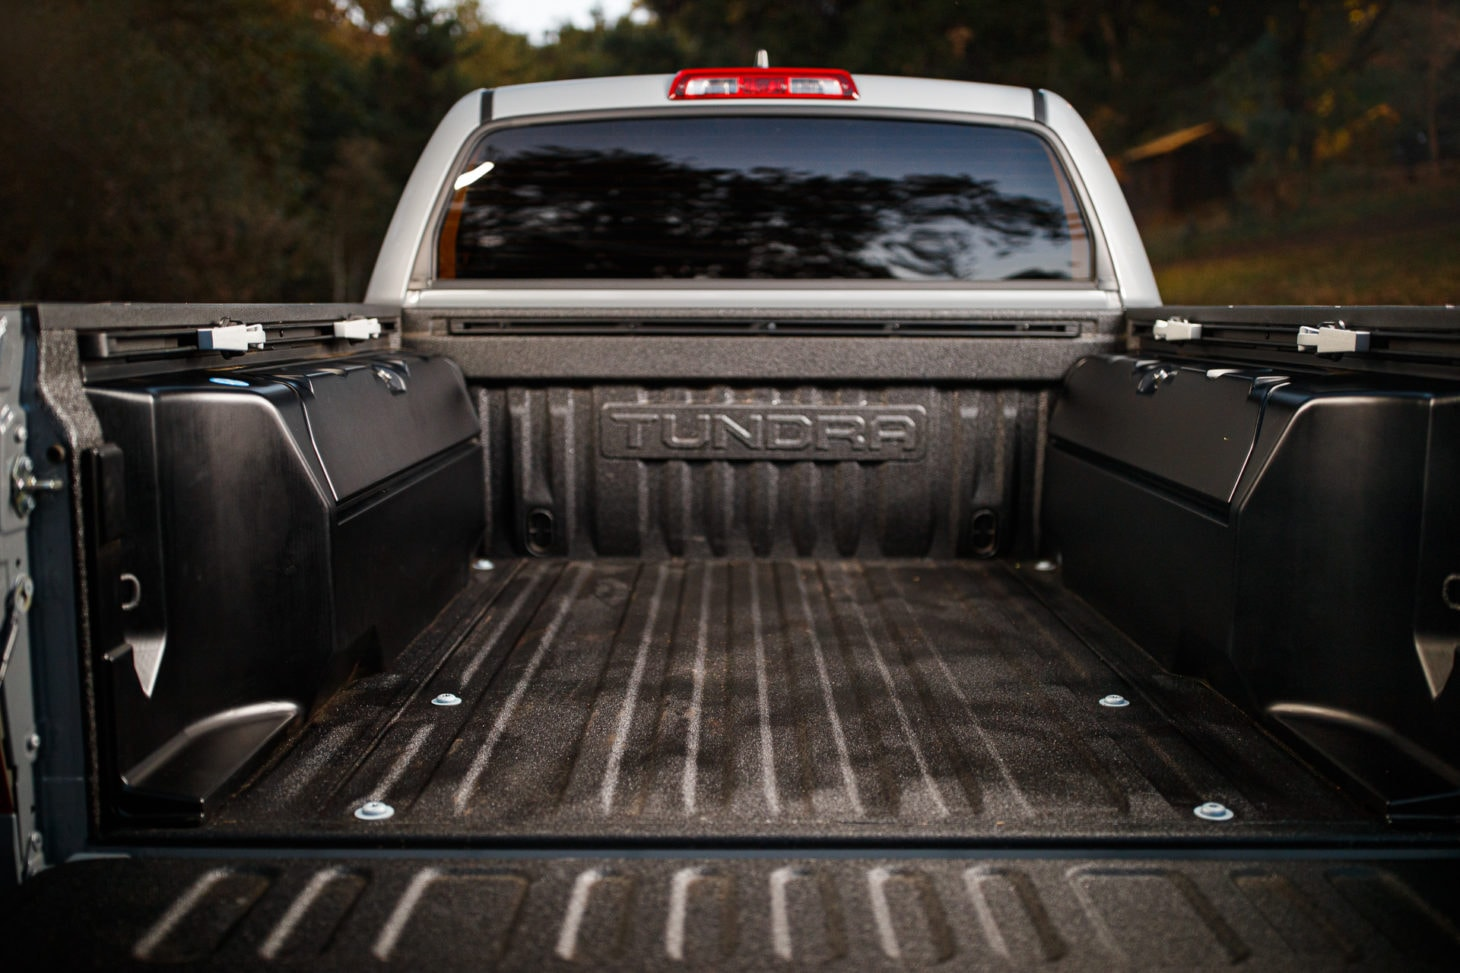 View of an empty truck bed